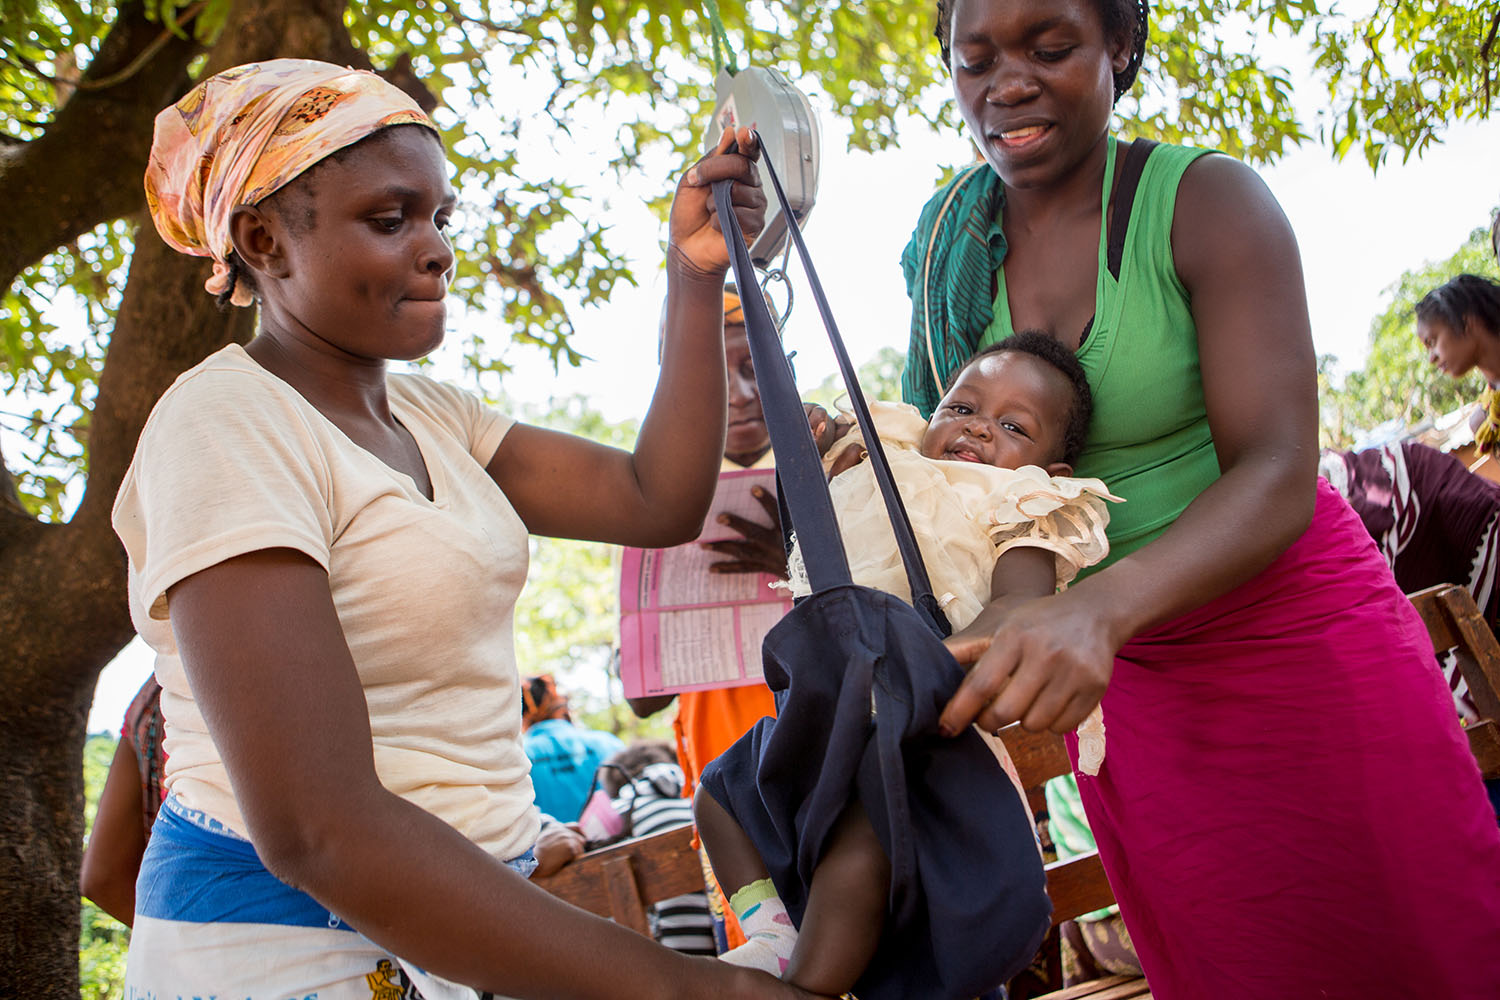 In Zambia, UNICEF works with its partners to improve the health and survival of children by increasing access to simple, cost-effective and high impact maternal, newborn, child and adolescent health services.